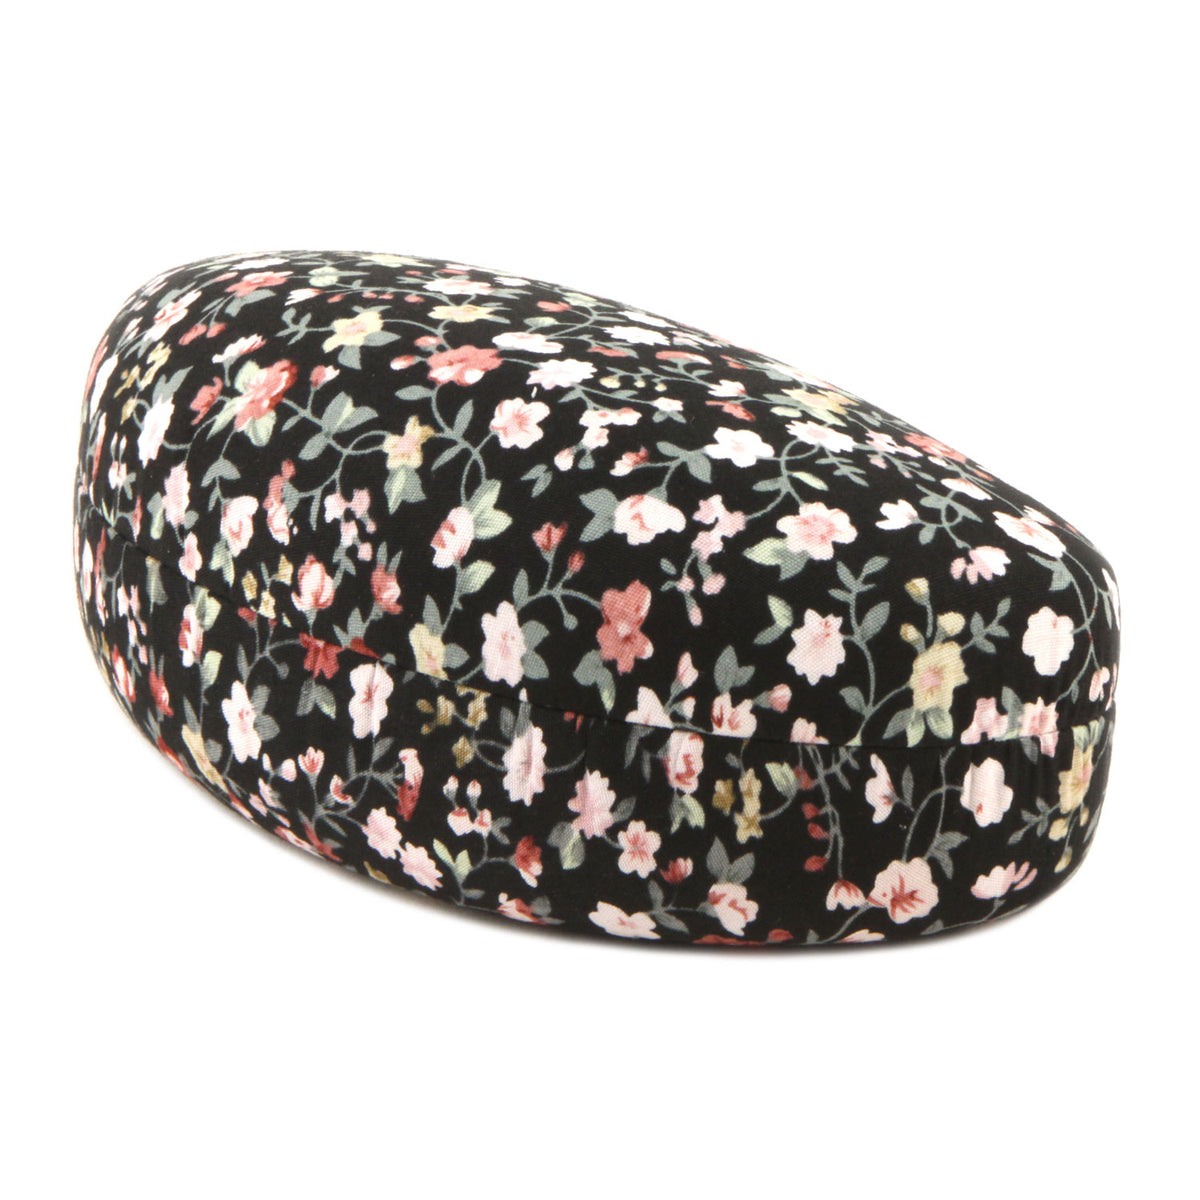 Flower Hard Curved Cover Eyewear Case Wholesale